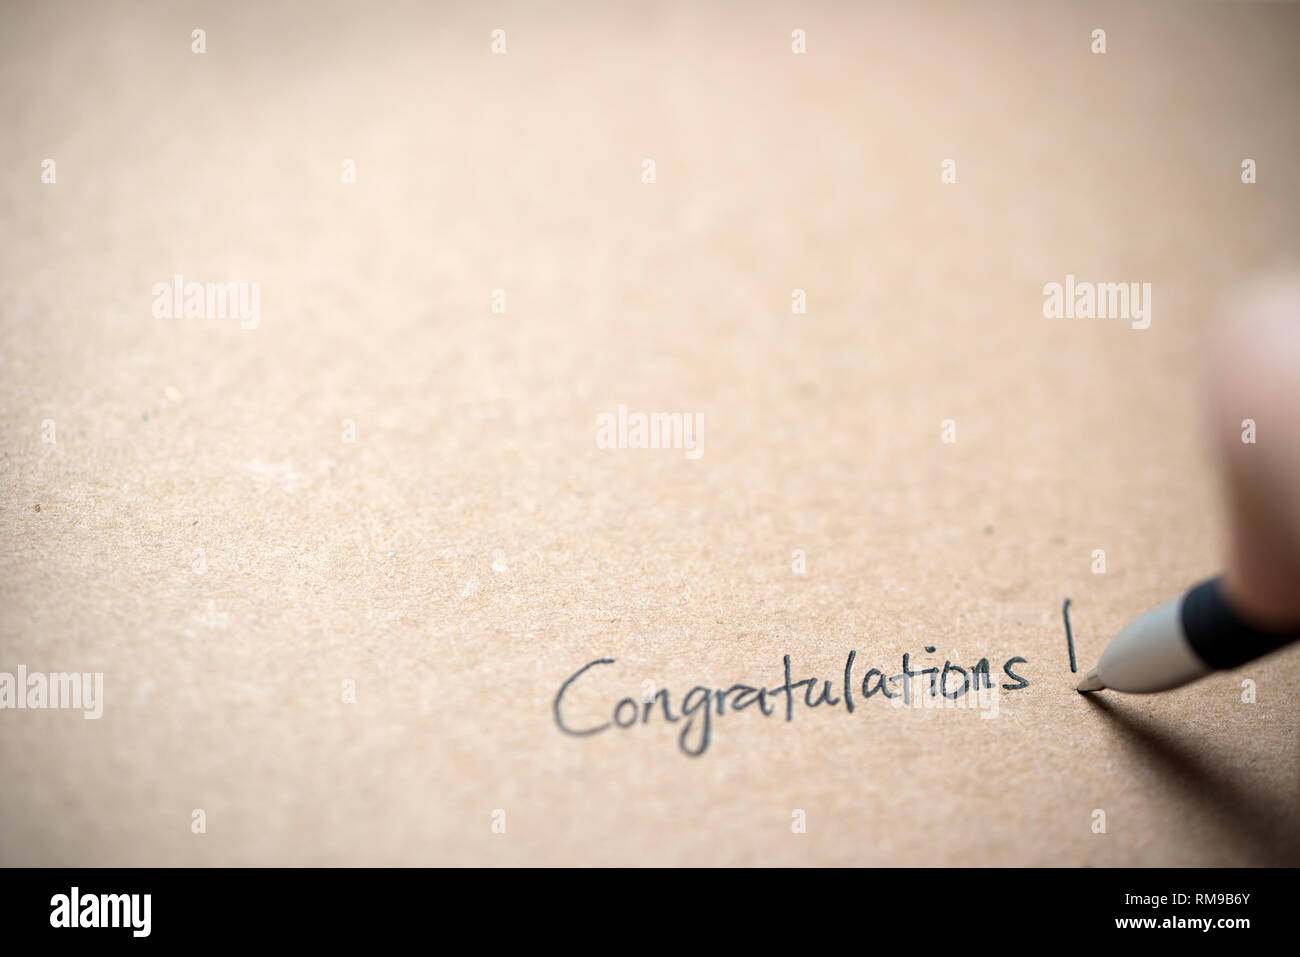 Hand writing congratulations note - Stock Image